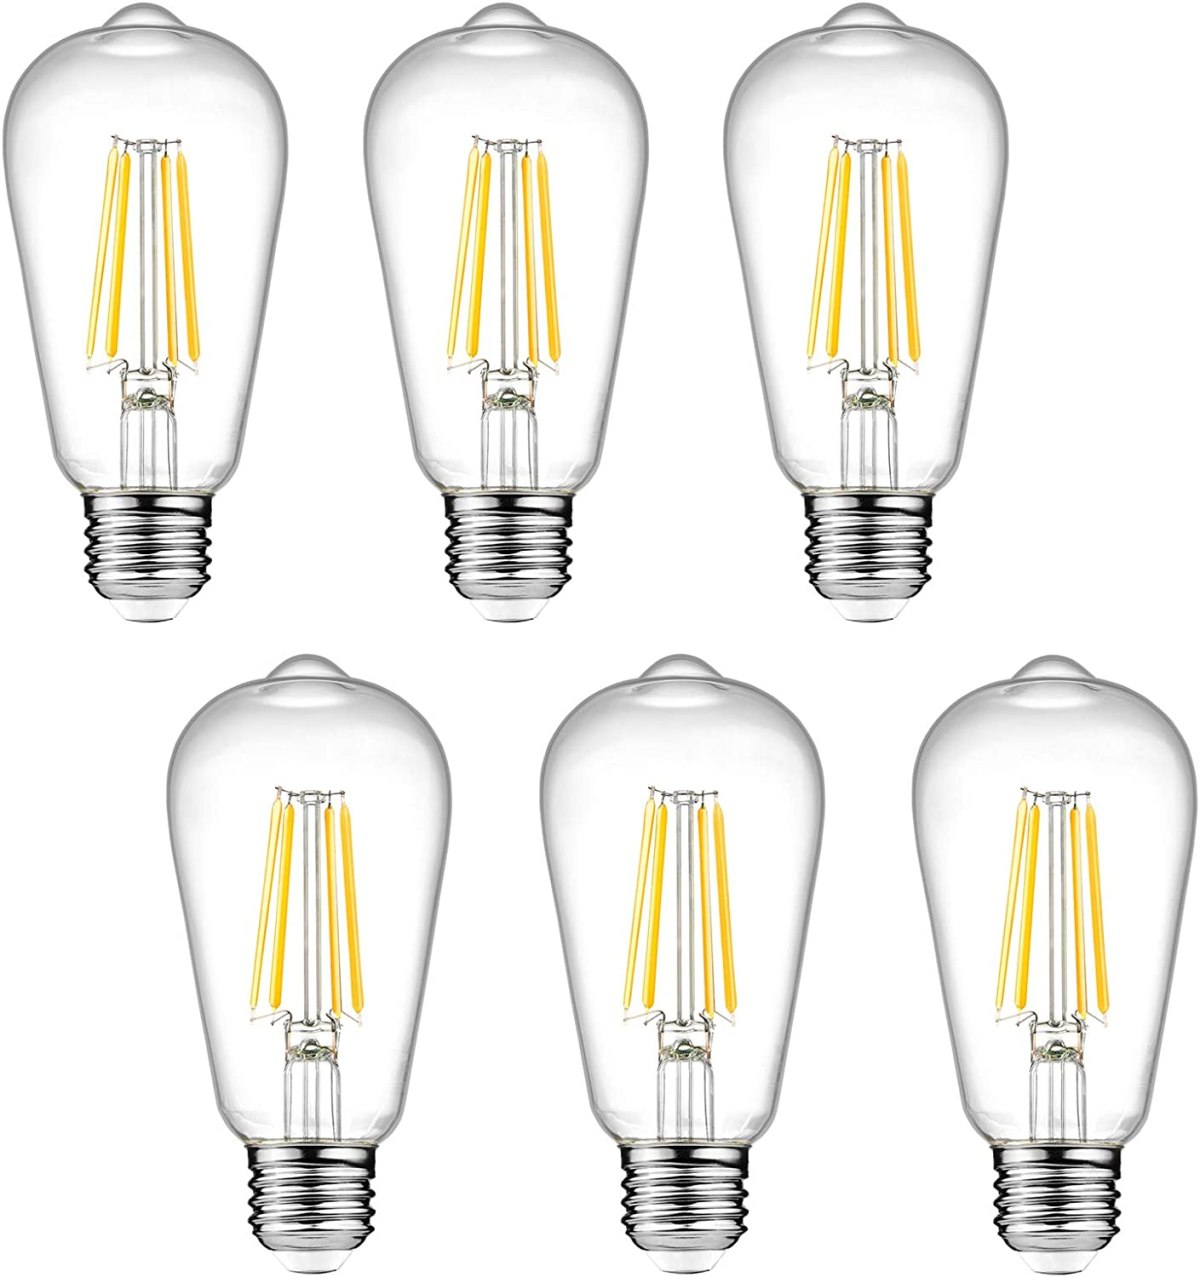 Dimmable Ascher Vintage LED Edison Bulbs